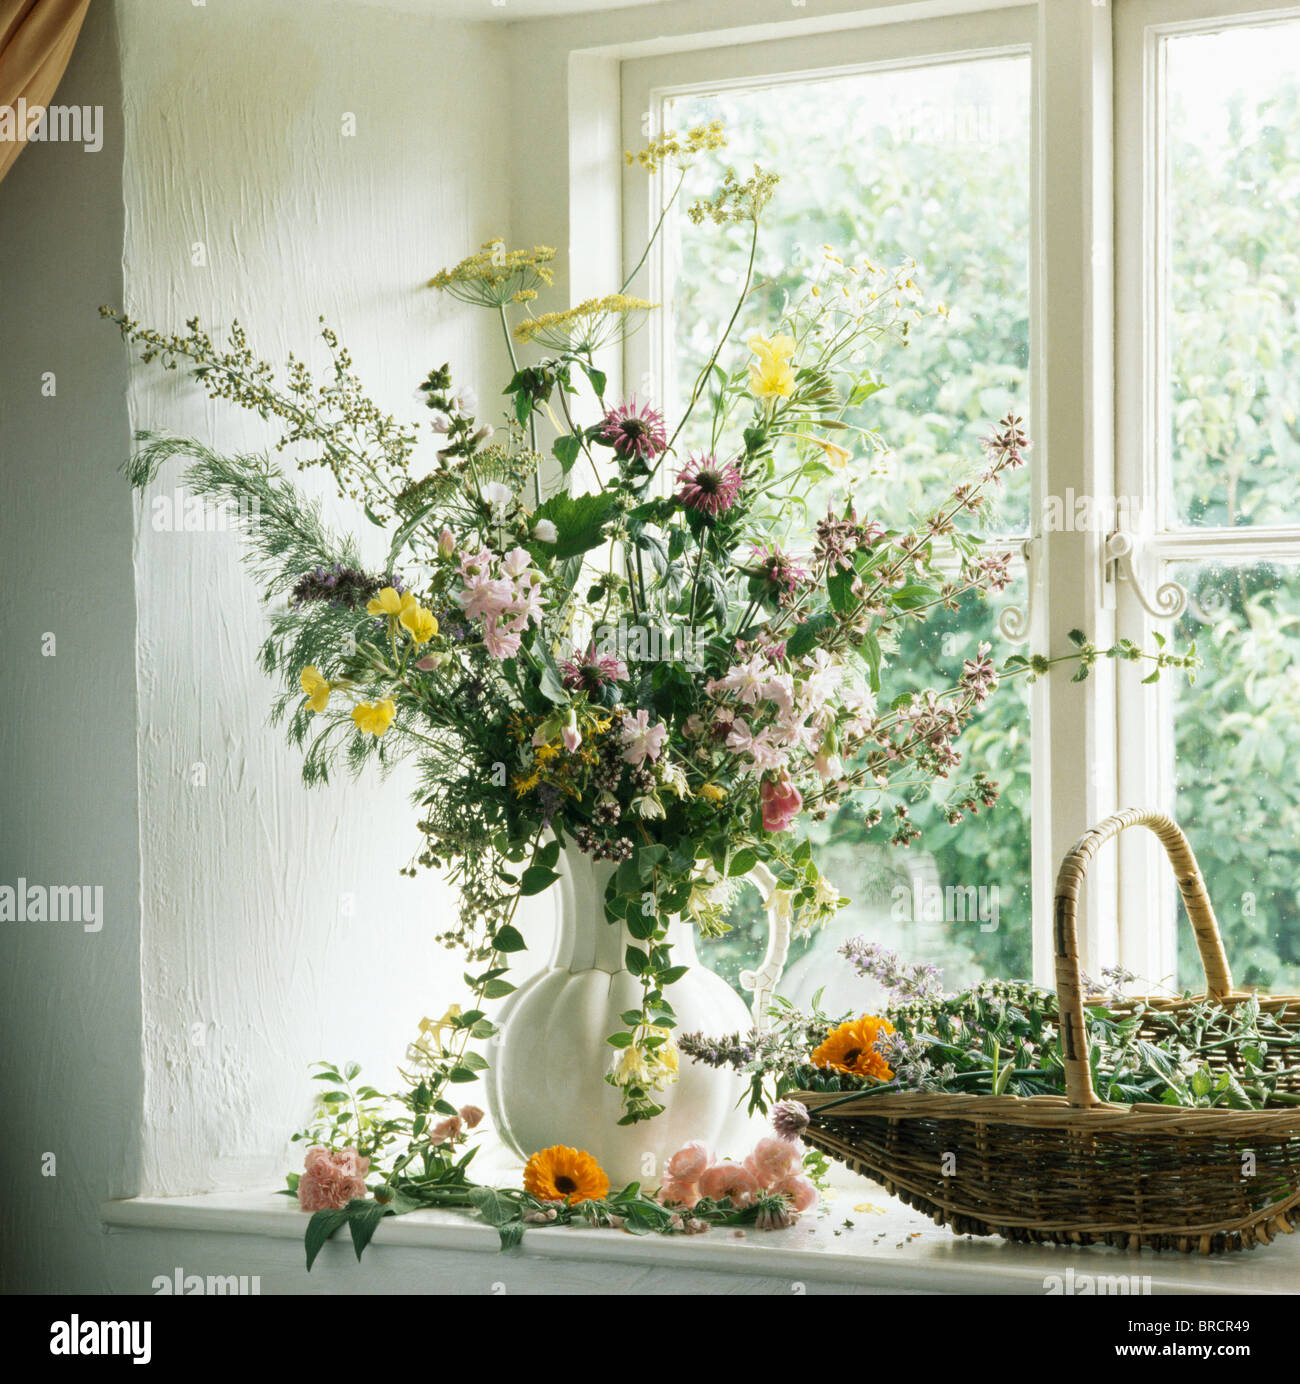 Still life of vase of summer country flowers on kitchen windowsill still life of vase of summer country flowers on kitchen windowsill reviewsmspy